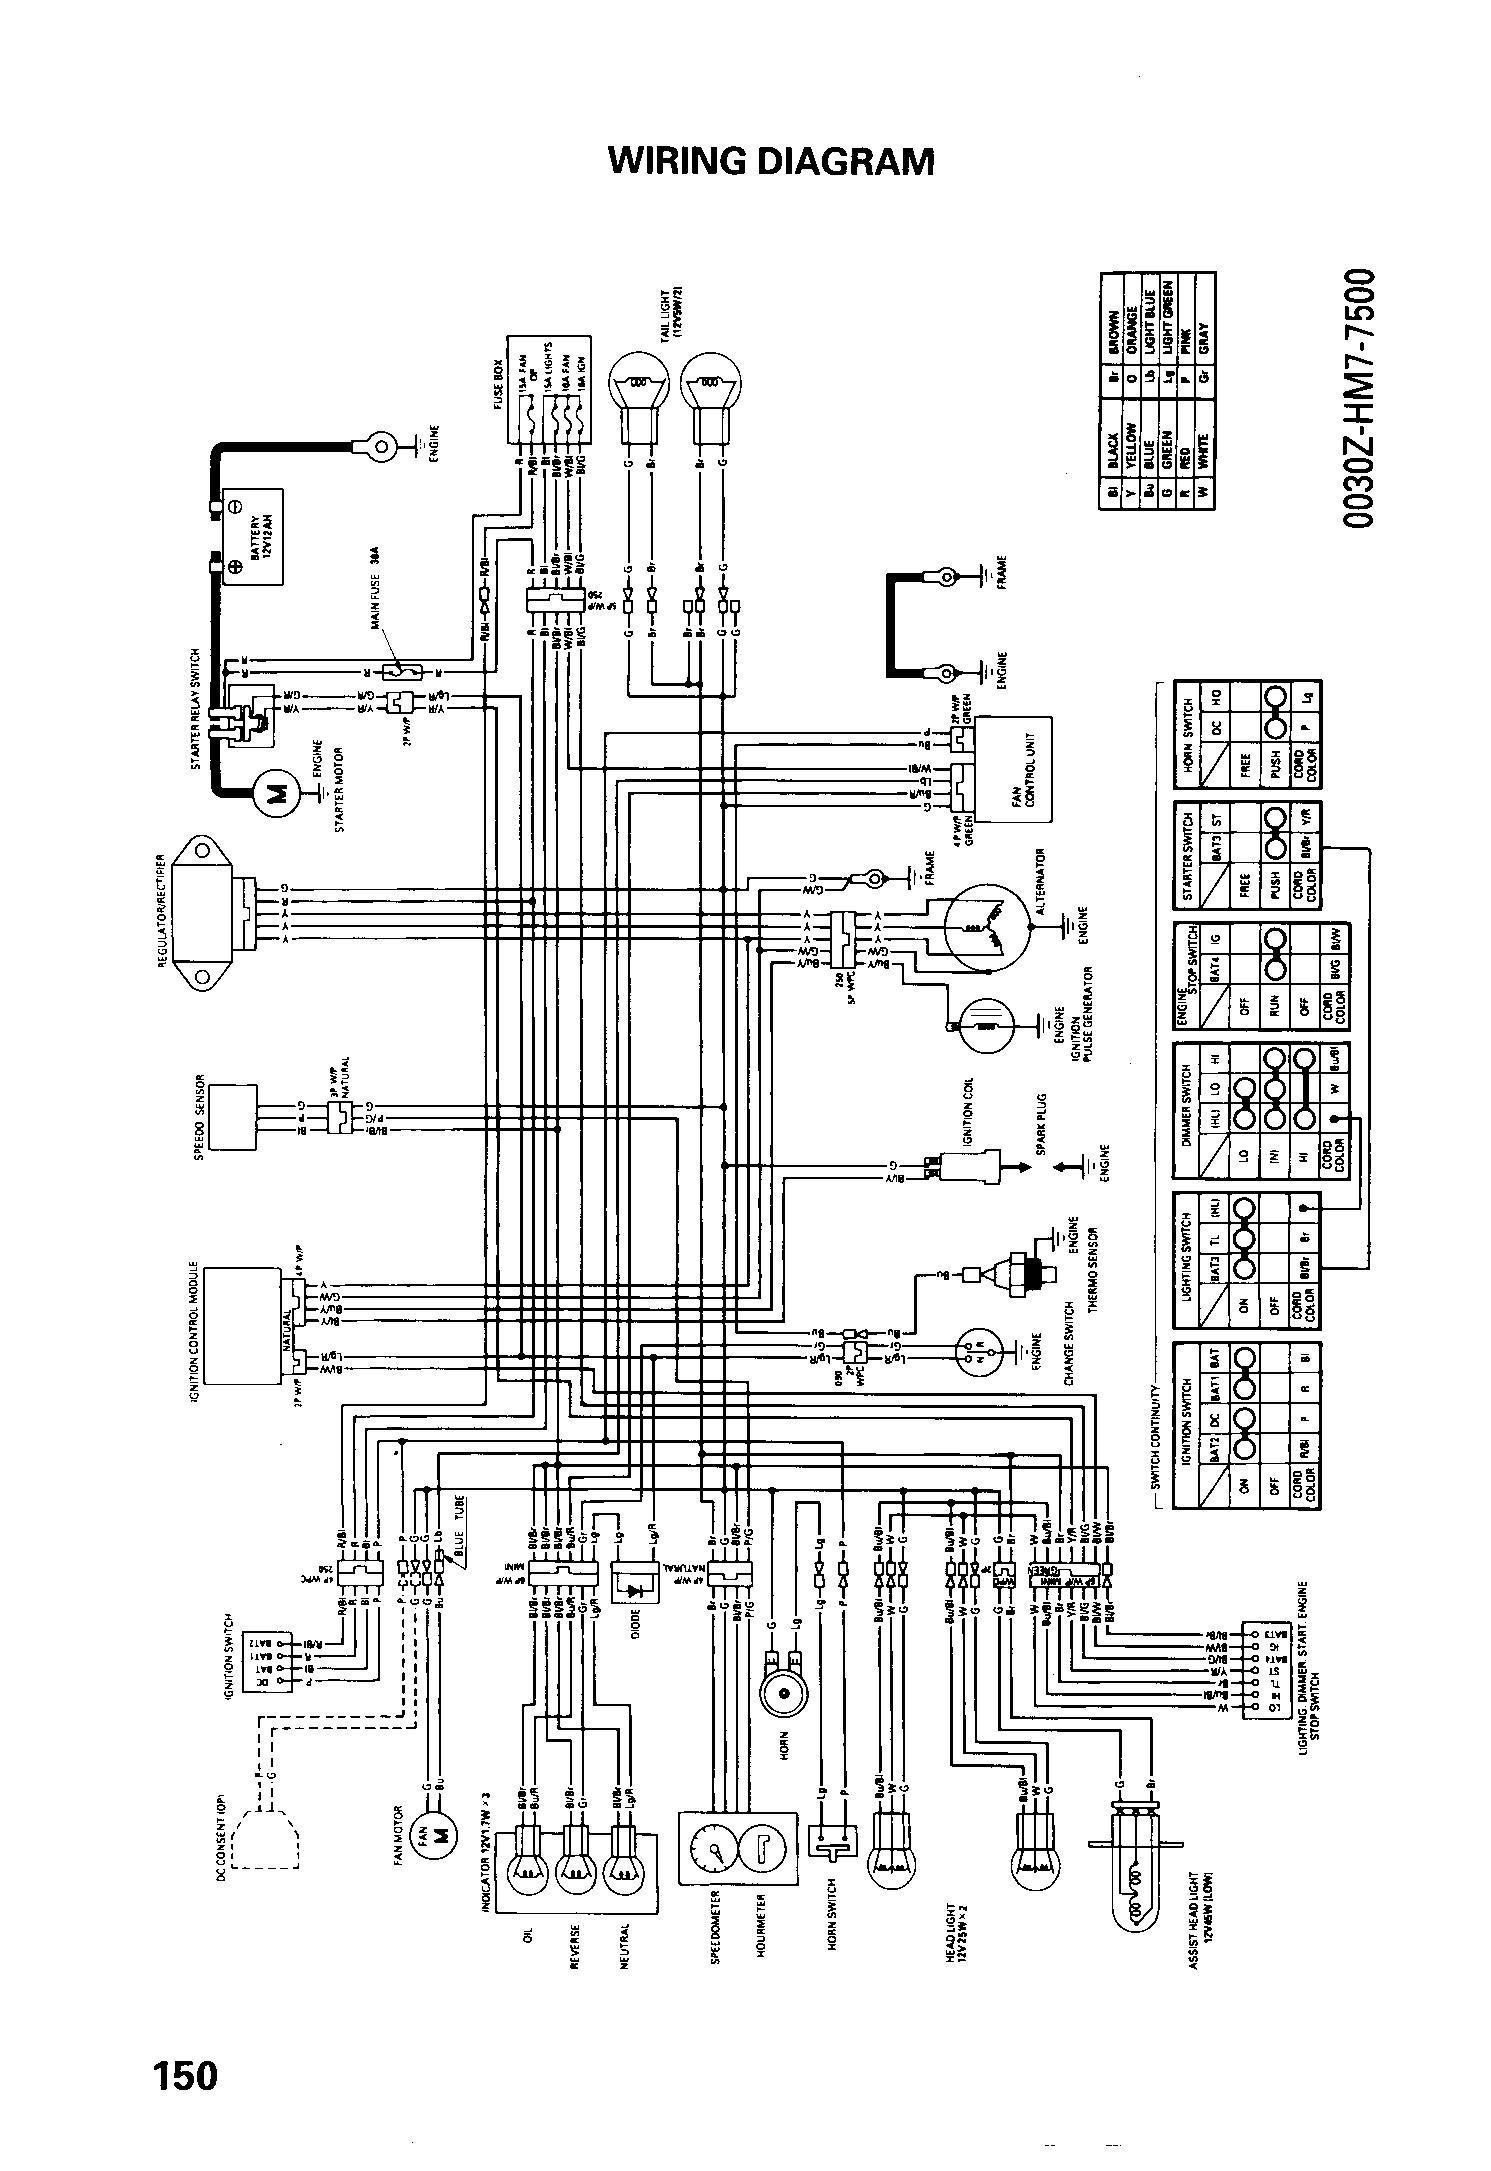 400ex Wiring Diagram | Schematic Diagram on